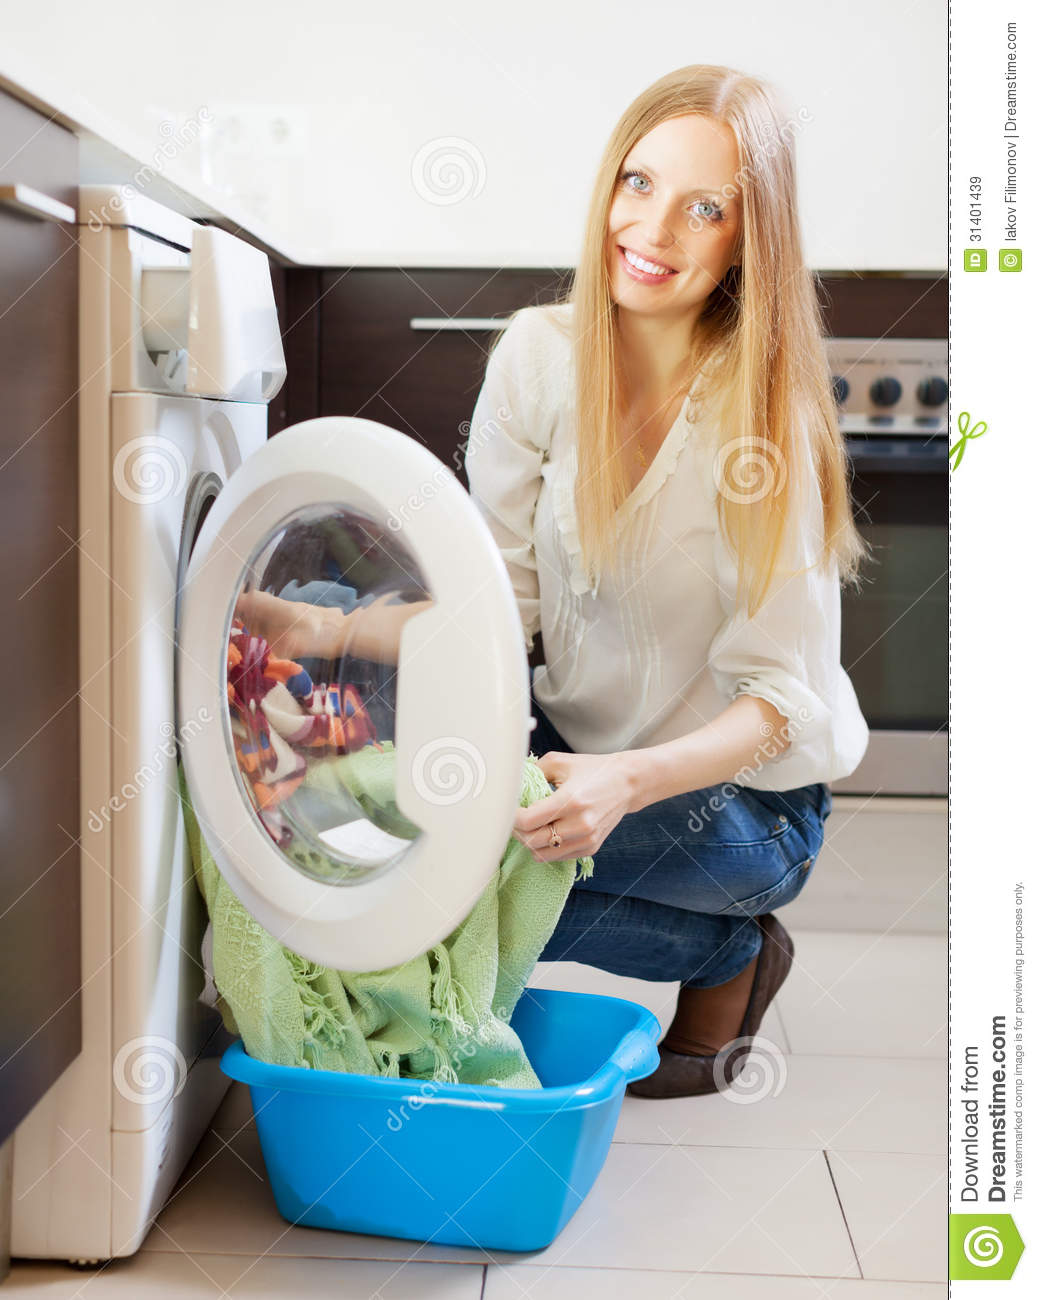 Washing Machine With Clothes ~ Happy long haired woman loading clothes into washing